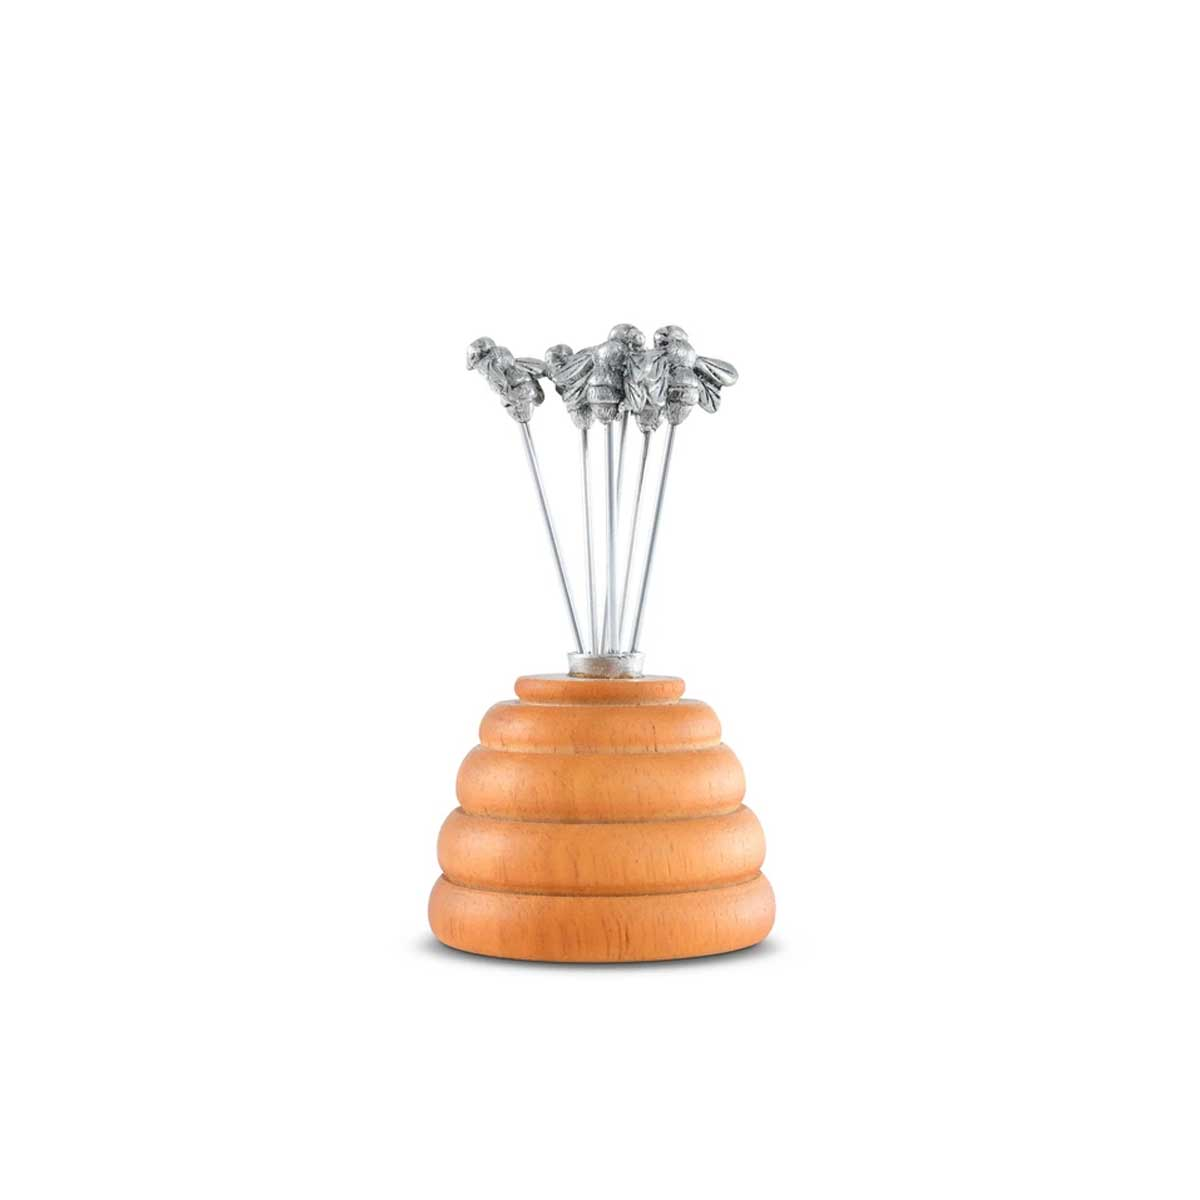 Vagabond House Hive of Bees Cheese Pick Set